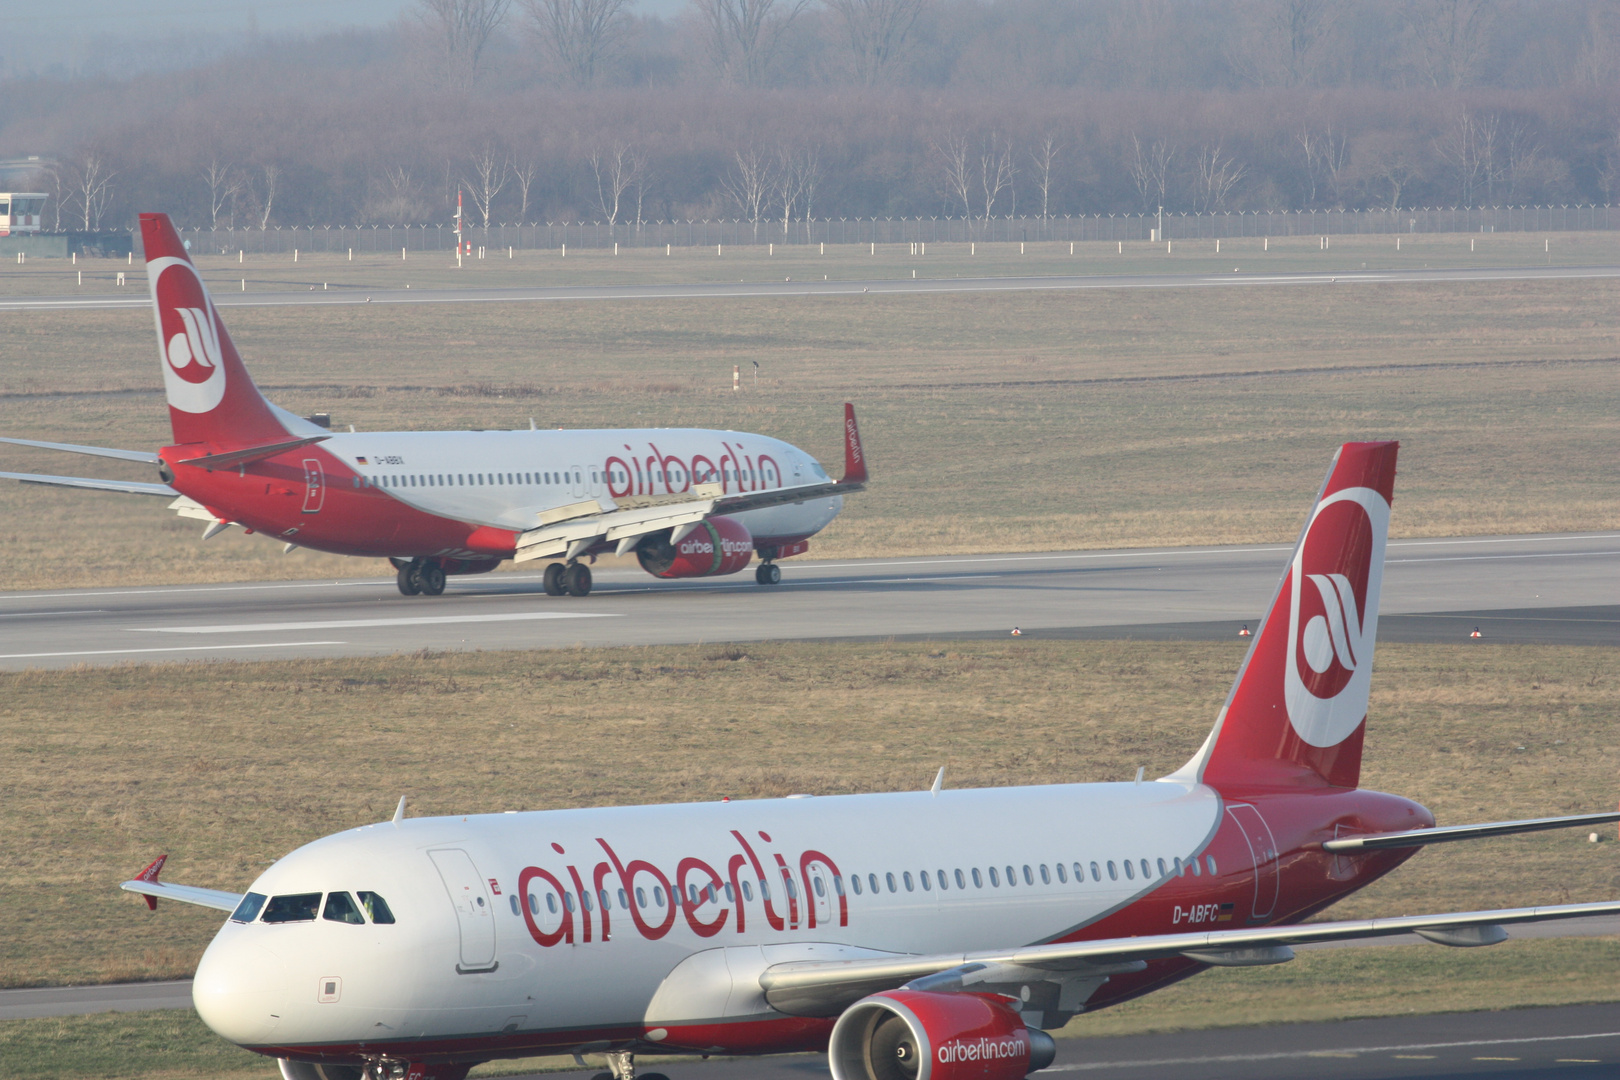 airberlin comes,airberlin goes.